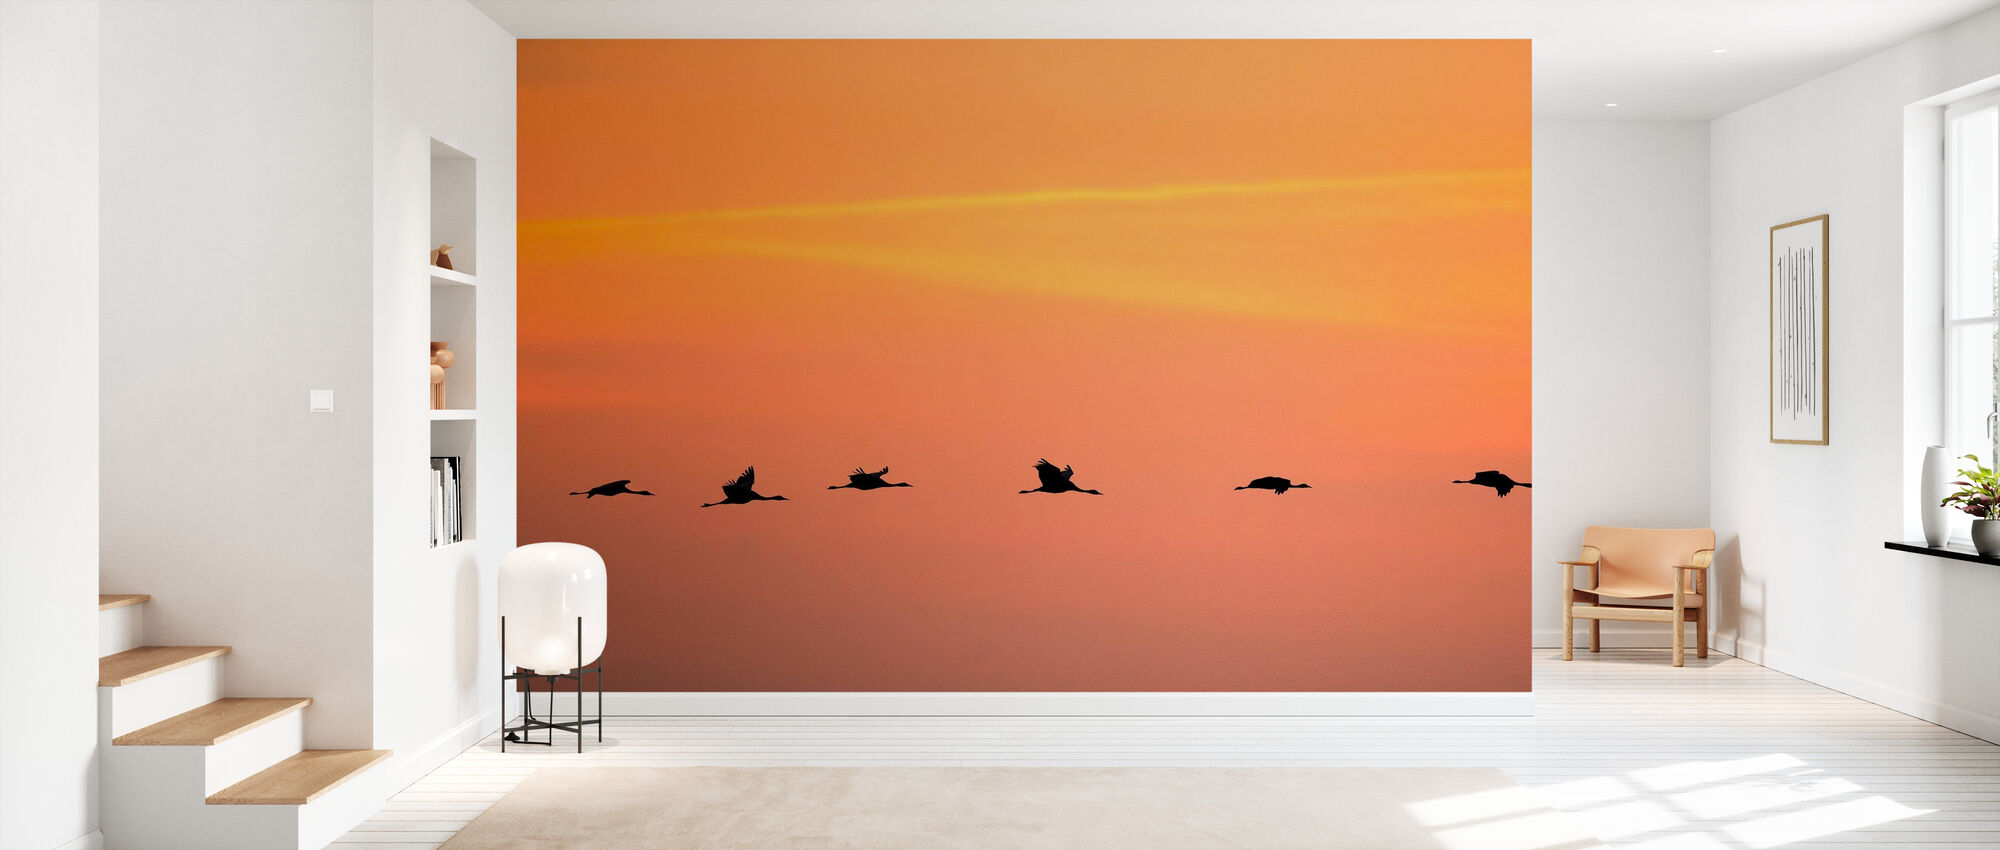 Cranes in Sunrise - Wallpaper - Hallway